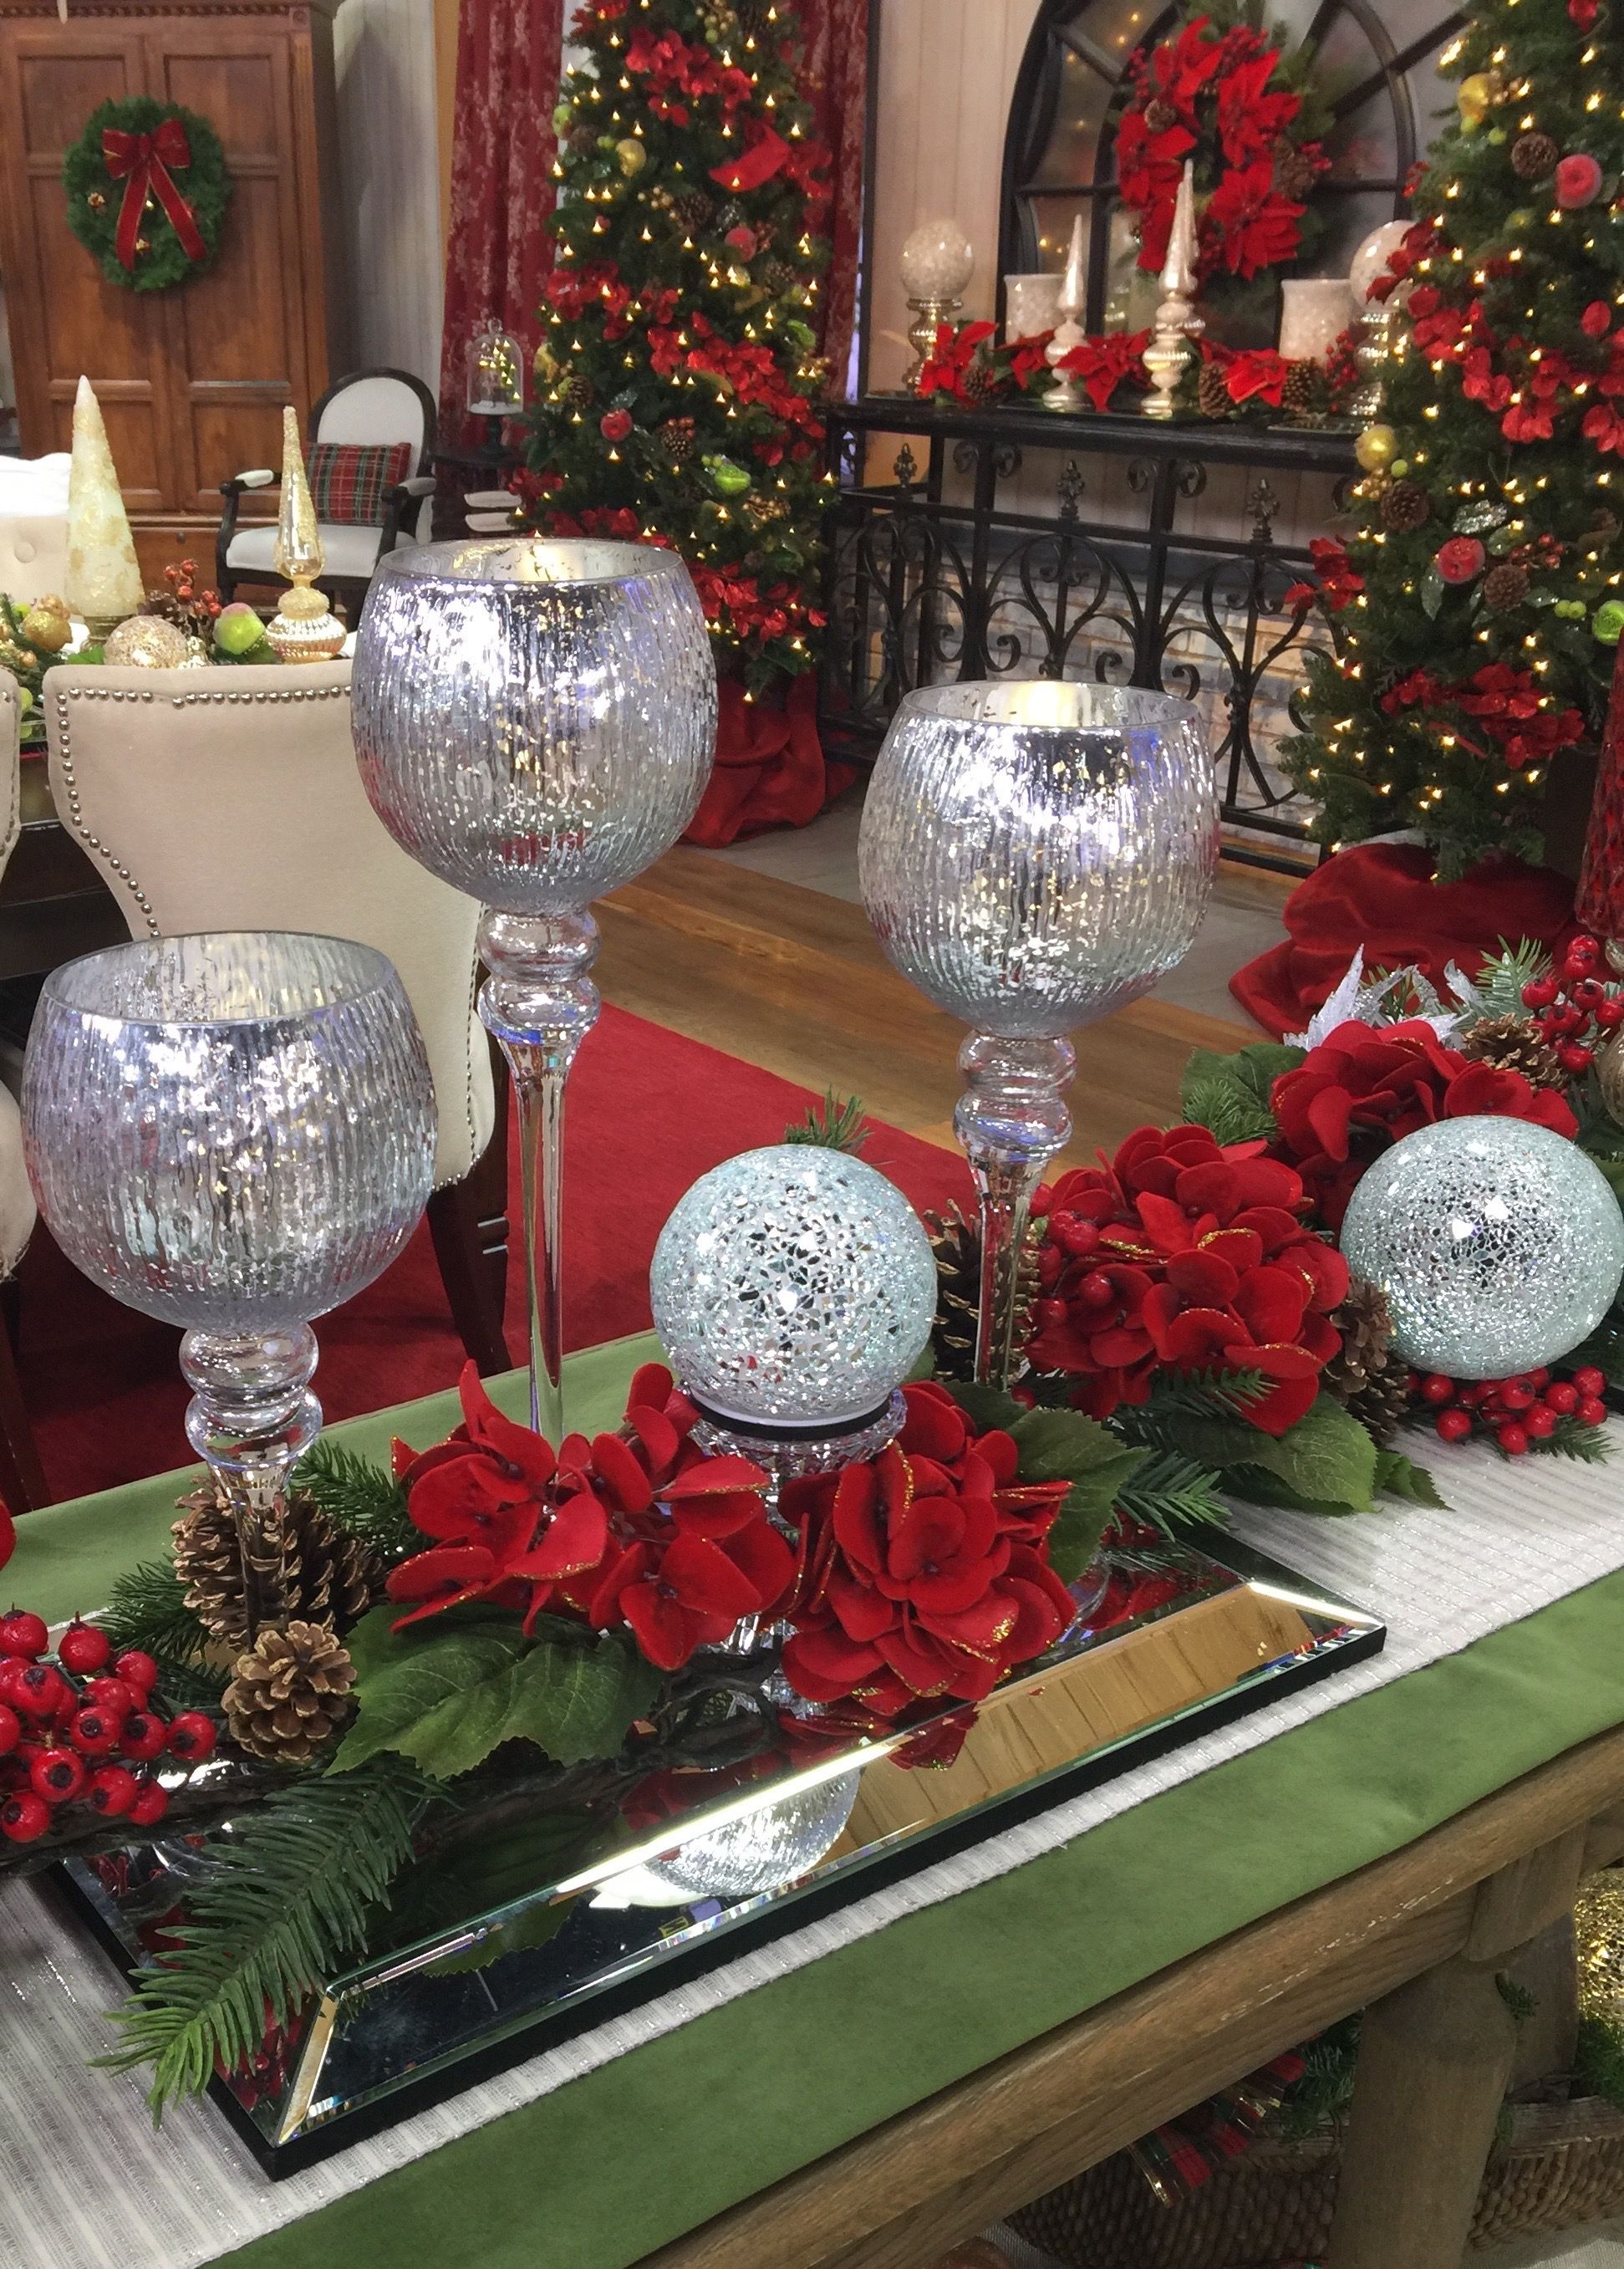 christmas tablescapes christmas decorations christmas ideas valerie parr hill lisa robertson holiday decorating interior decorating